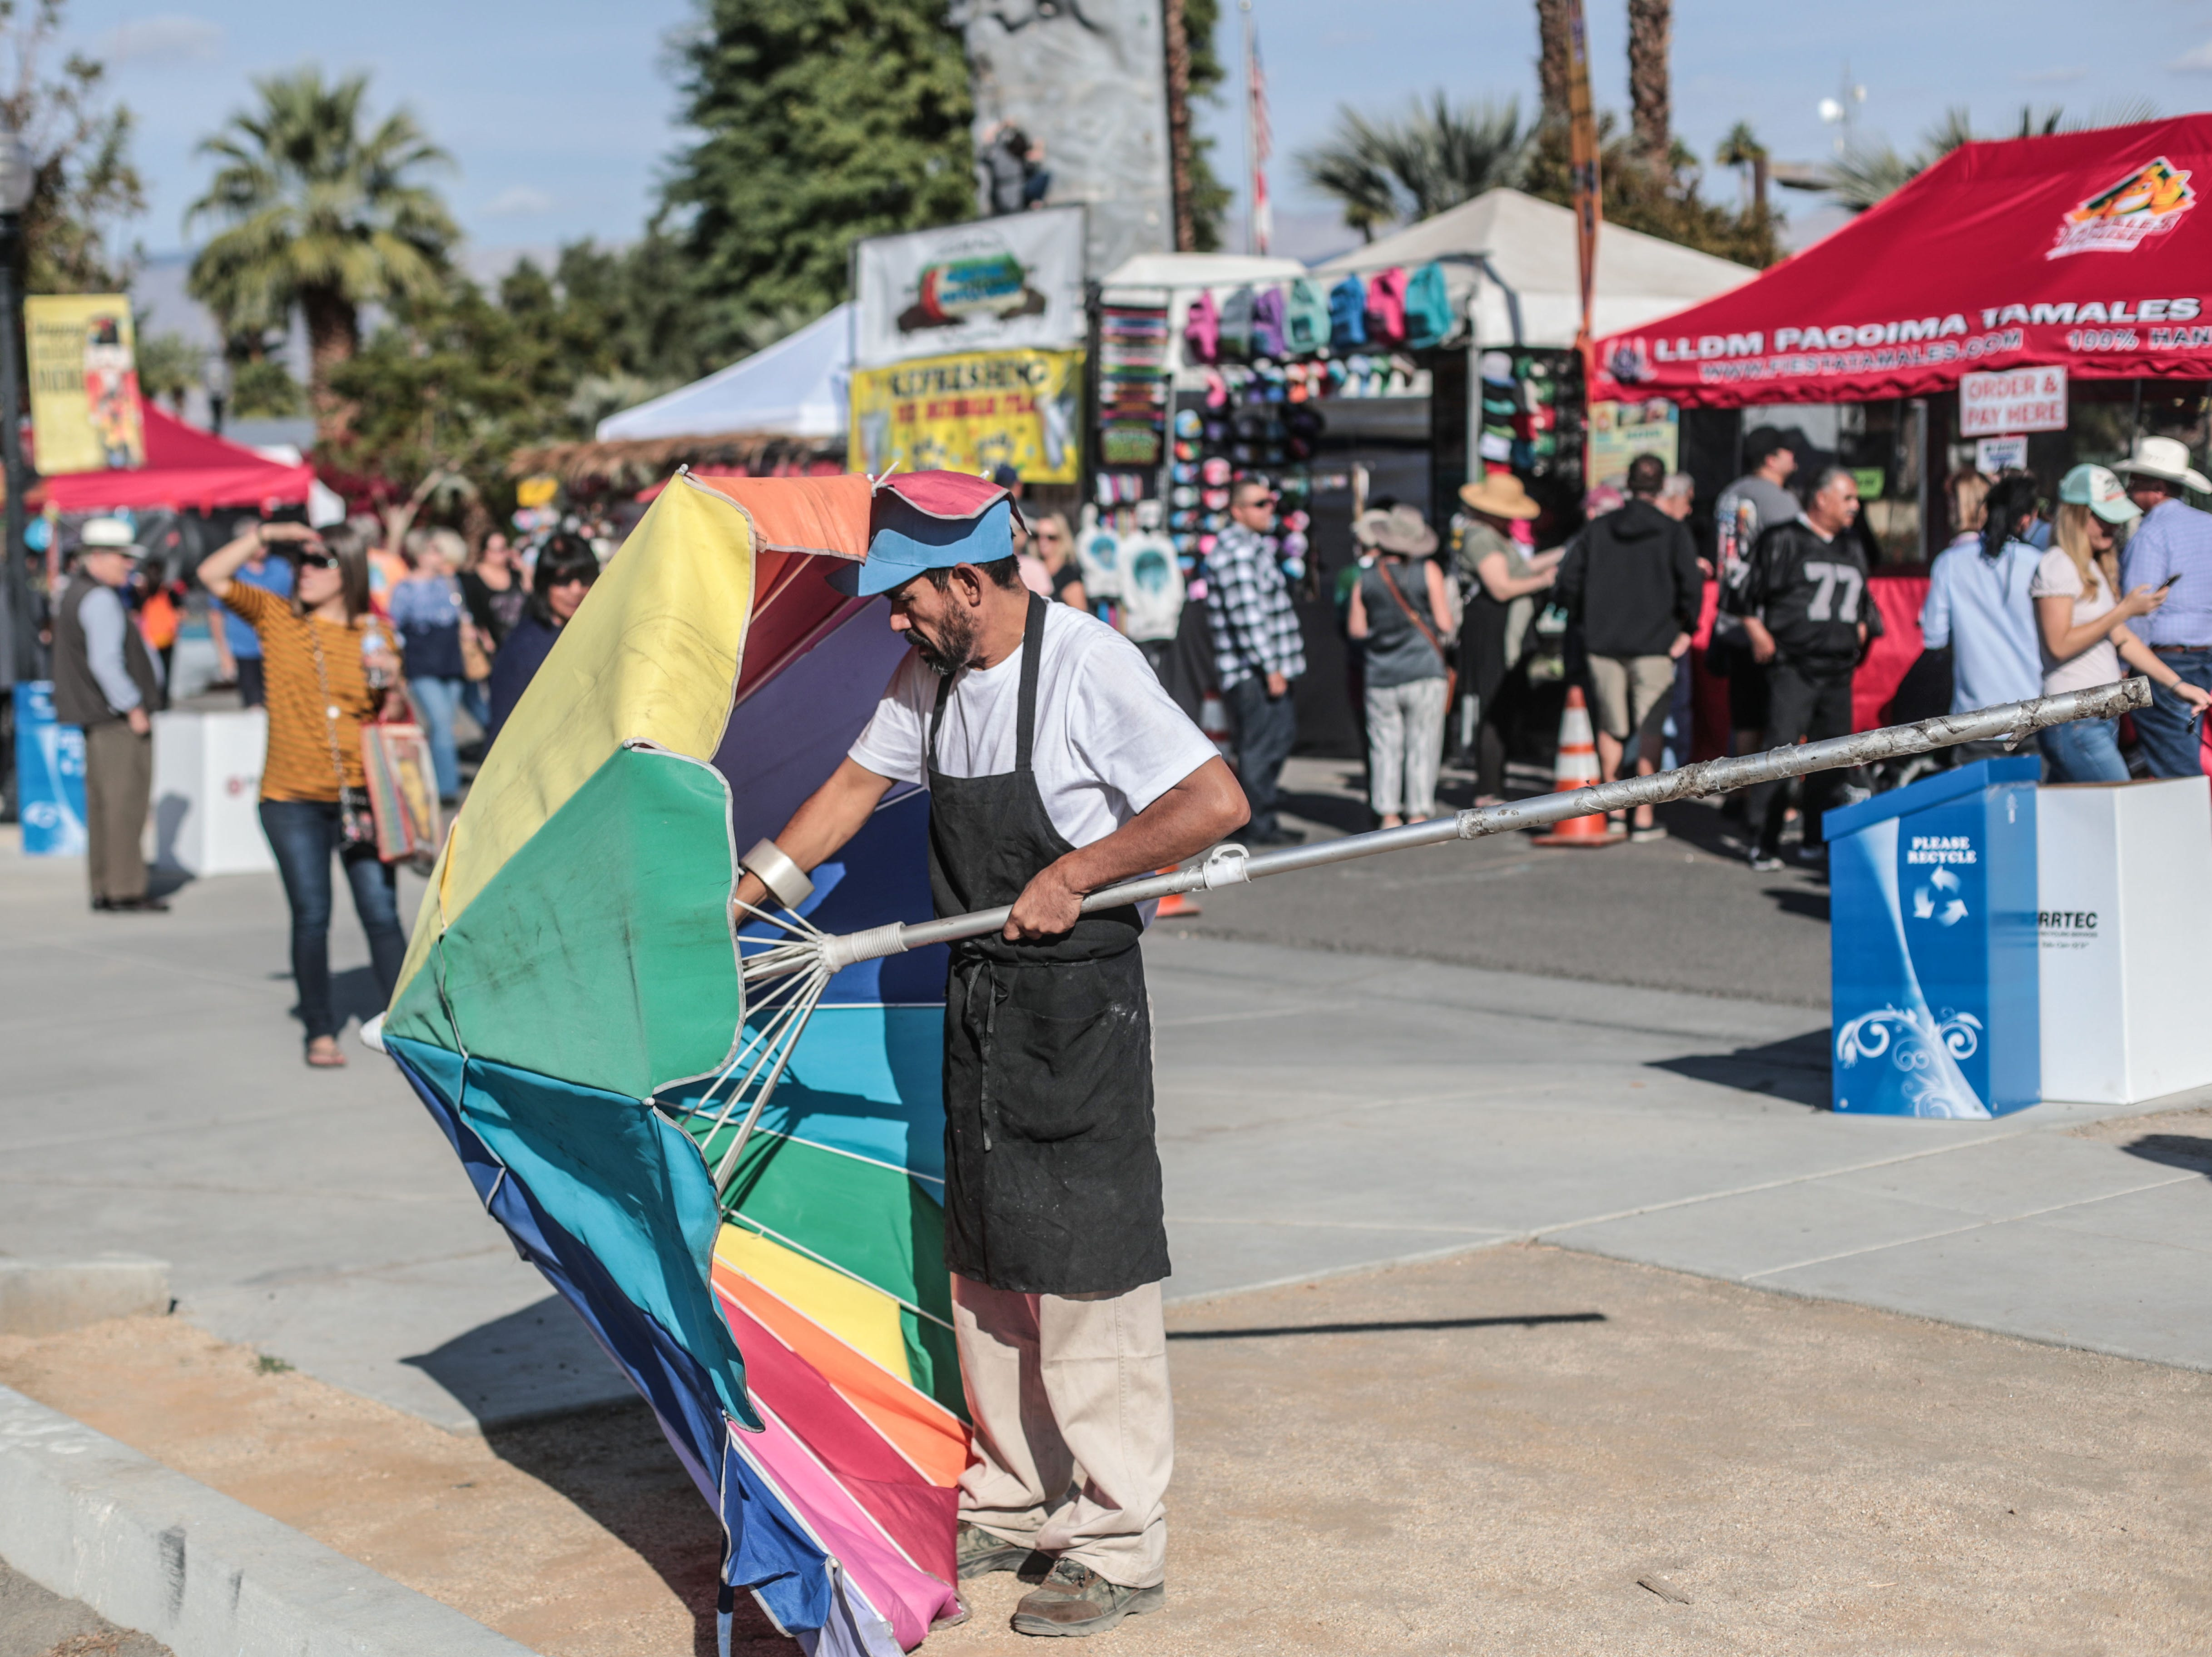 A man setting up an umbrella on Saturday, December 1, 2018 during annual Indio Tamales Festival.